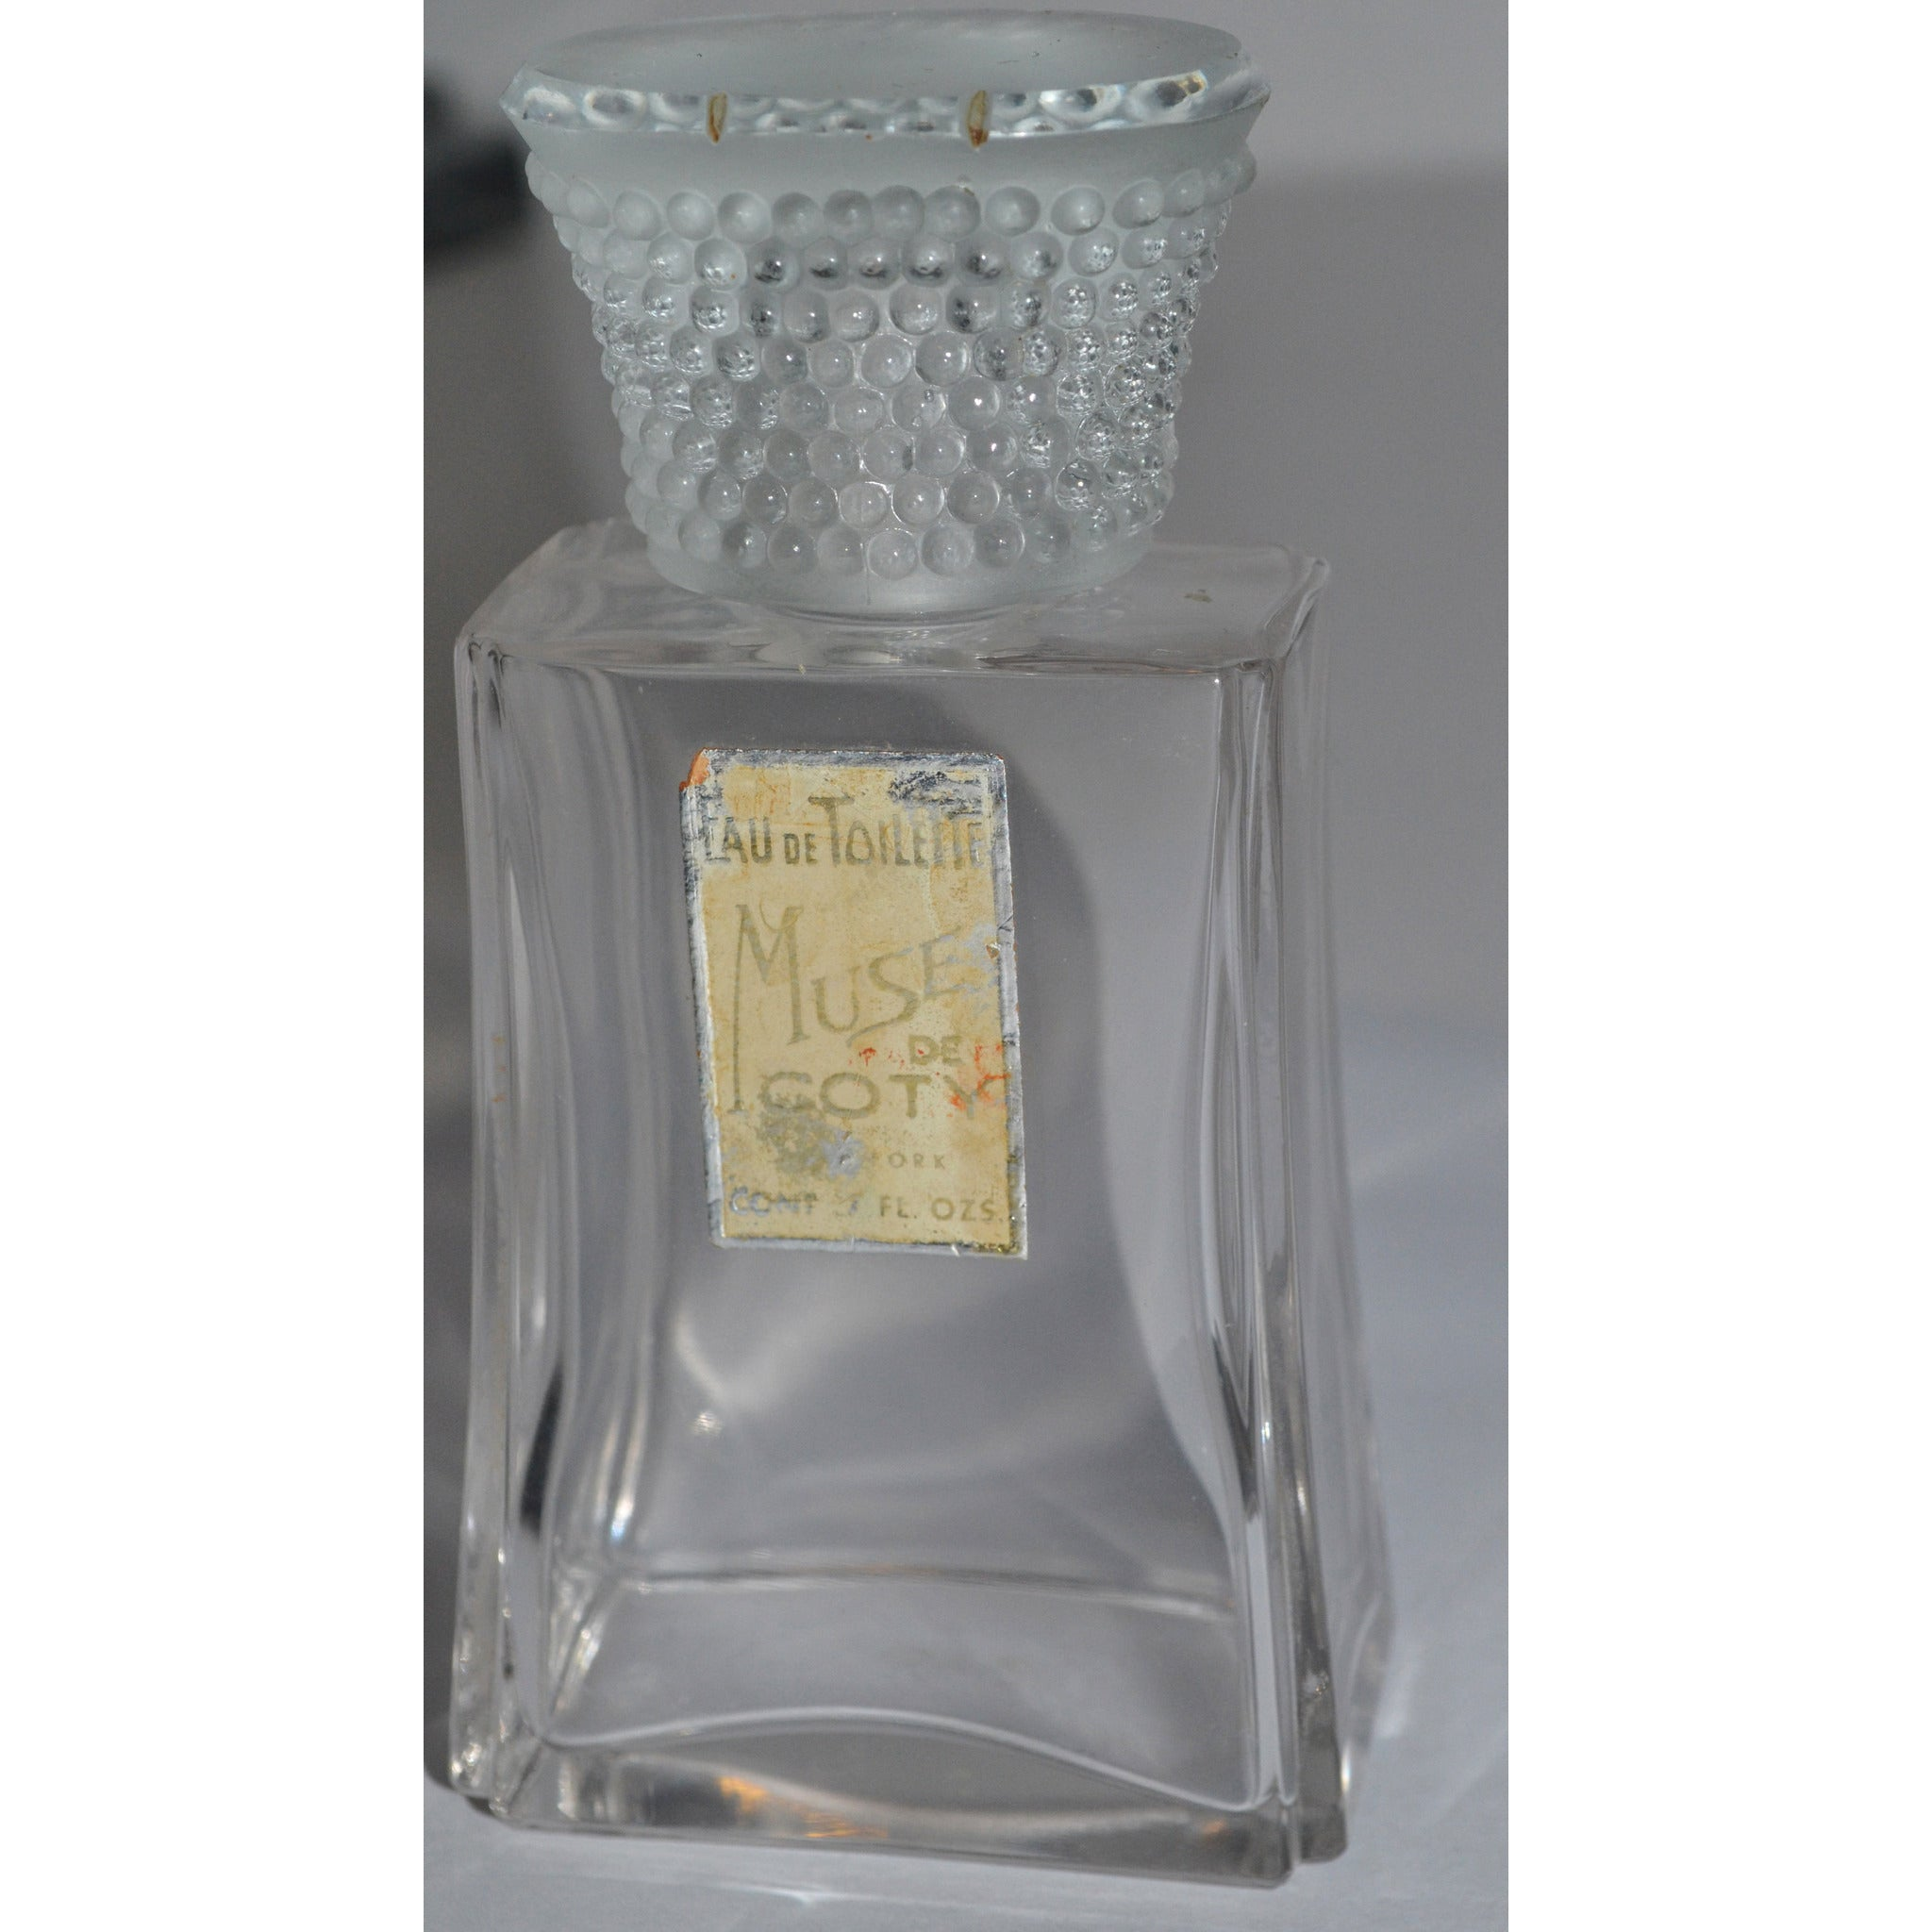 Vintage Muse Eau De Toilette Baccarat Bottle By Coty